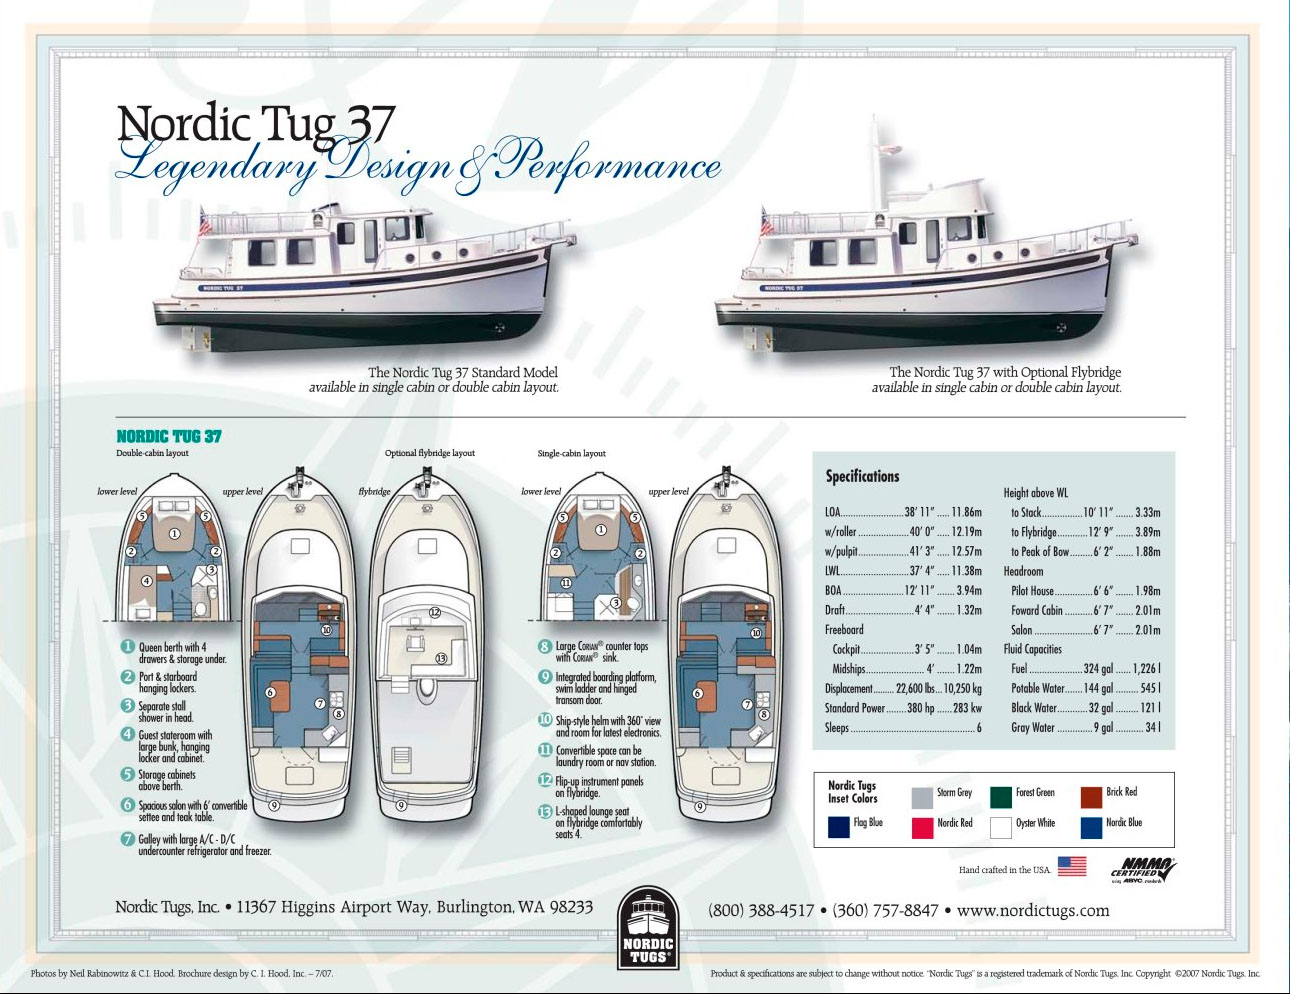 Nordic Tugs 37 Specifications